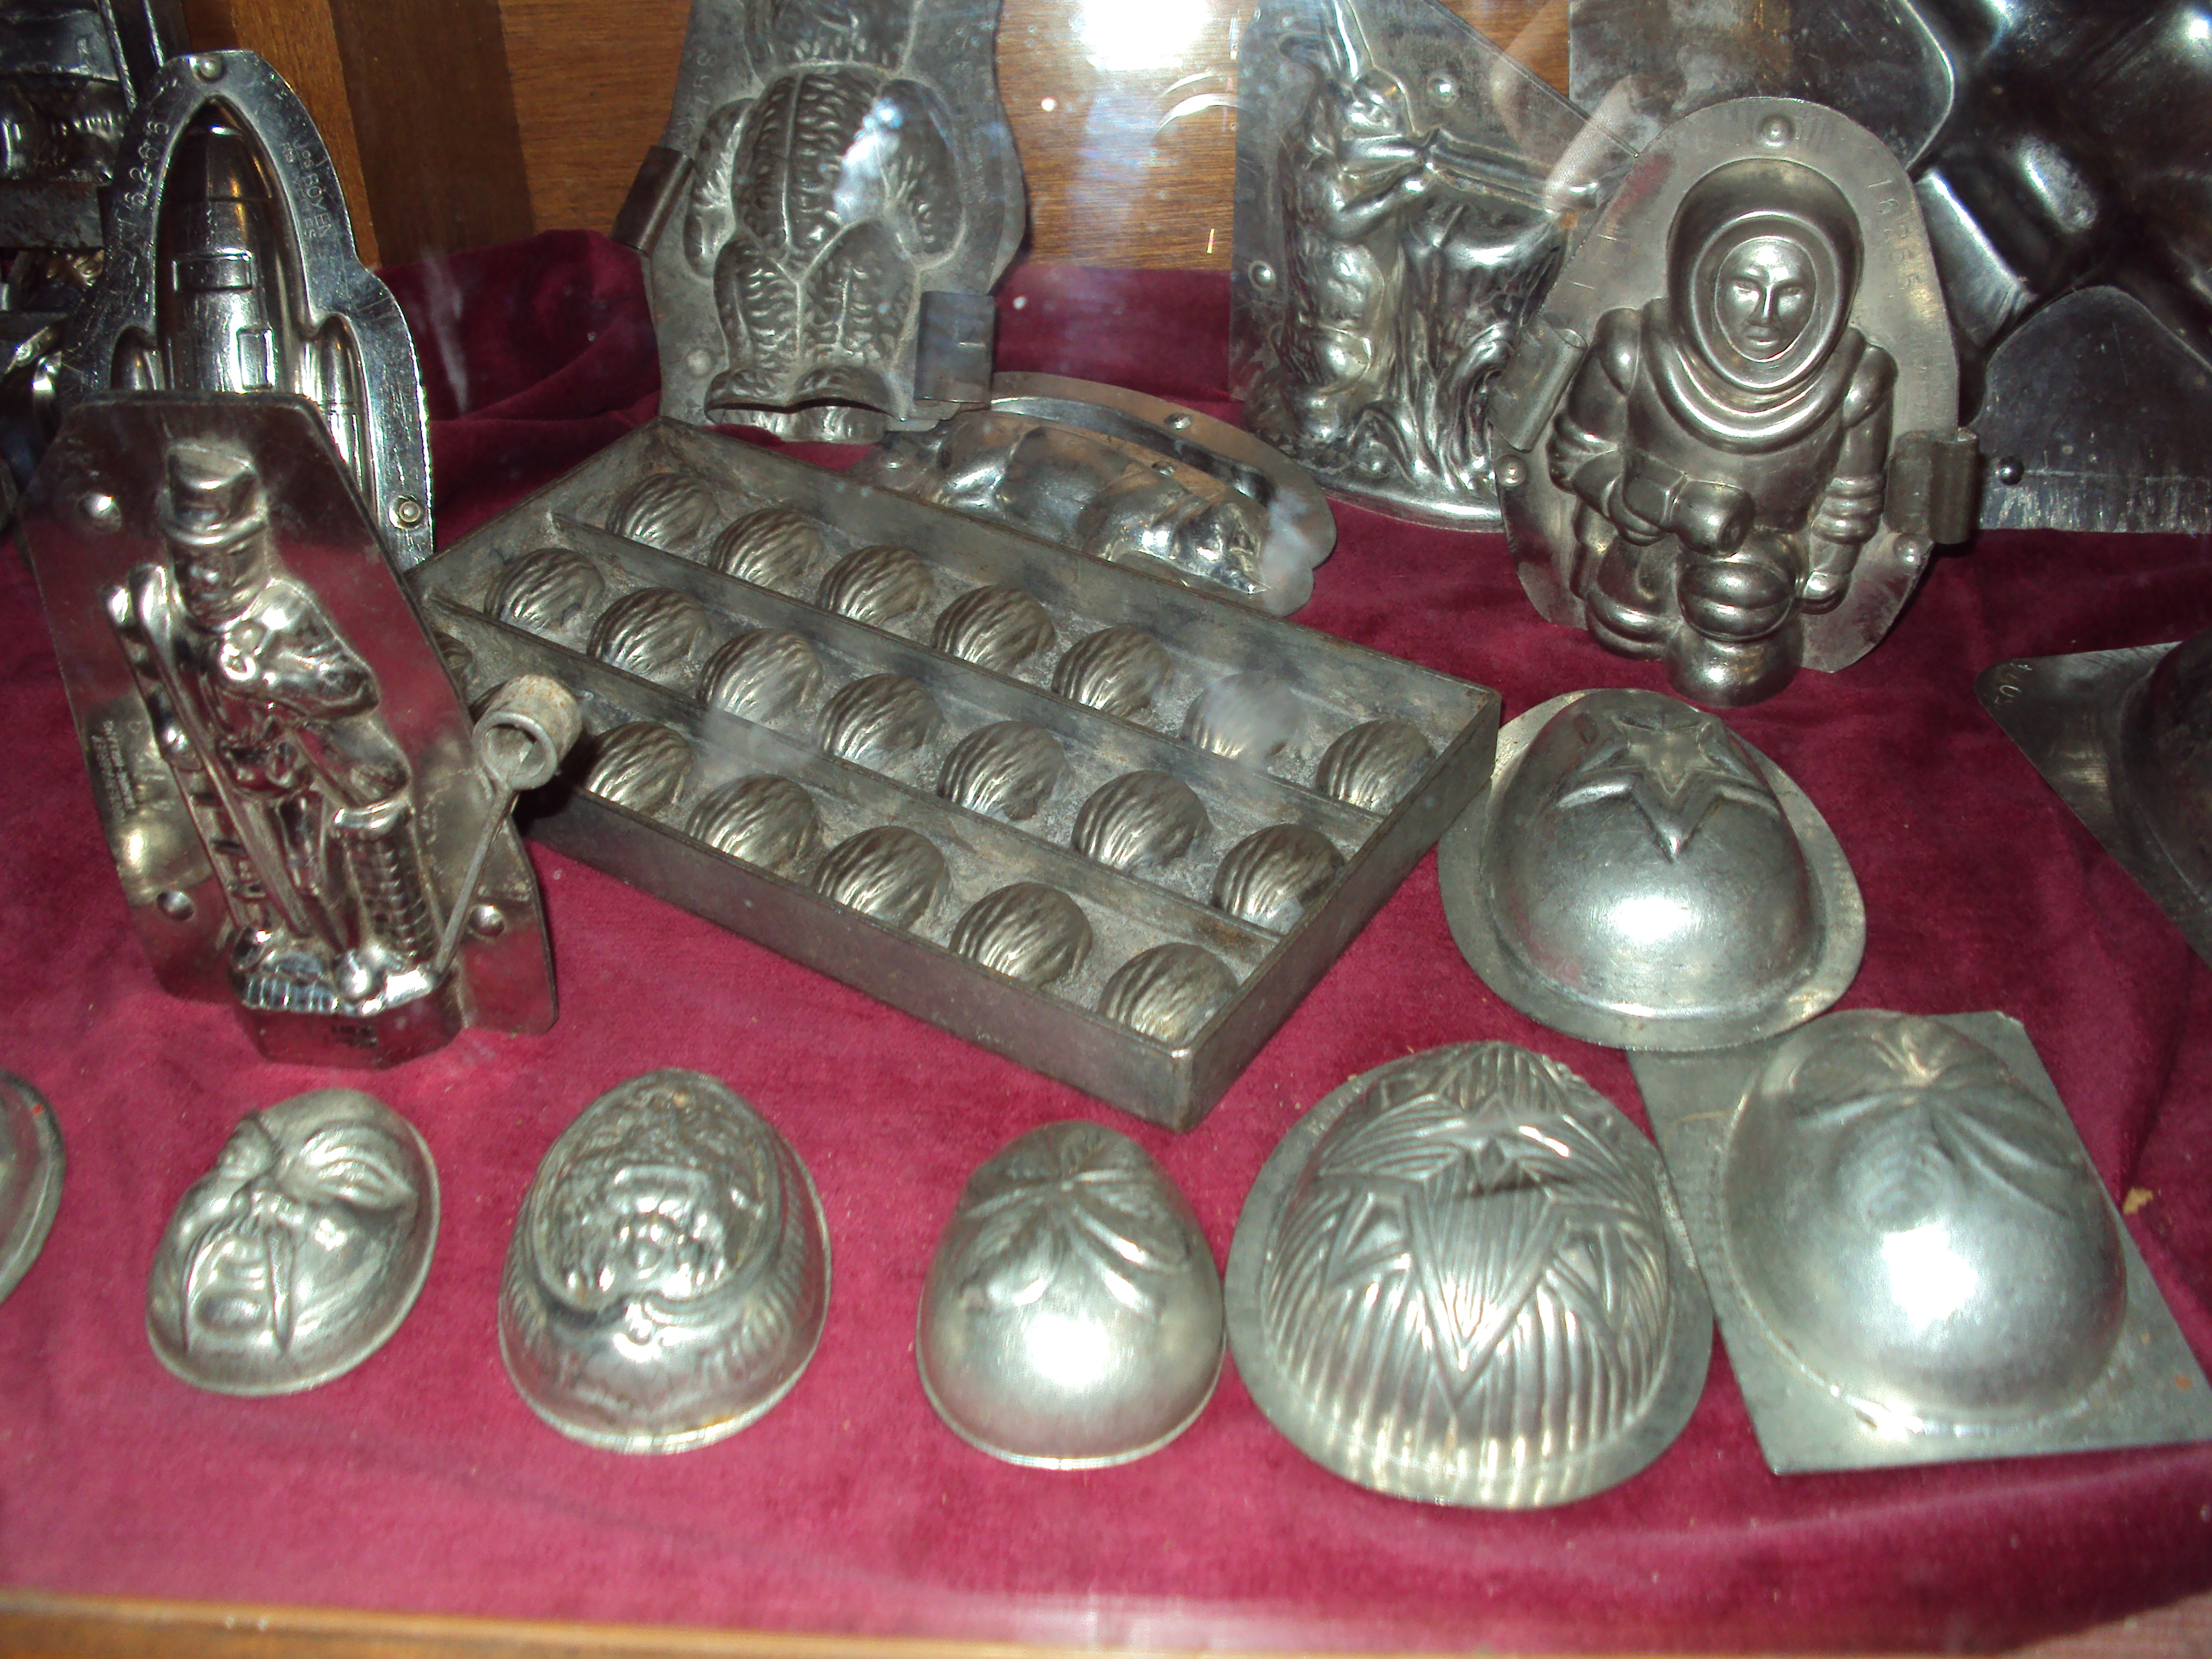 Chocolate moulds loving carved by Willy Wonka